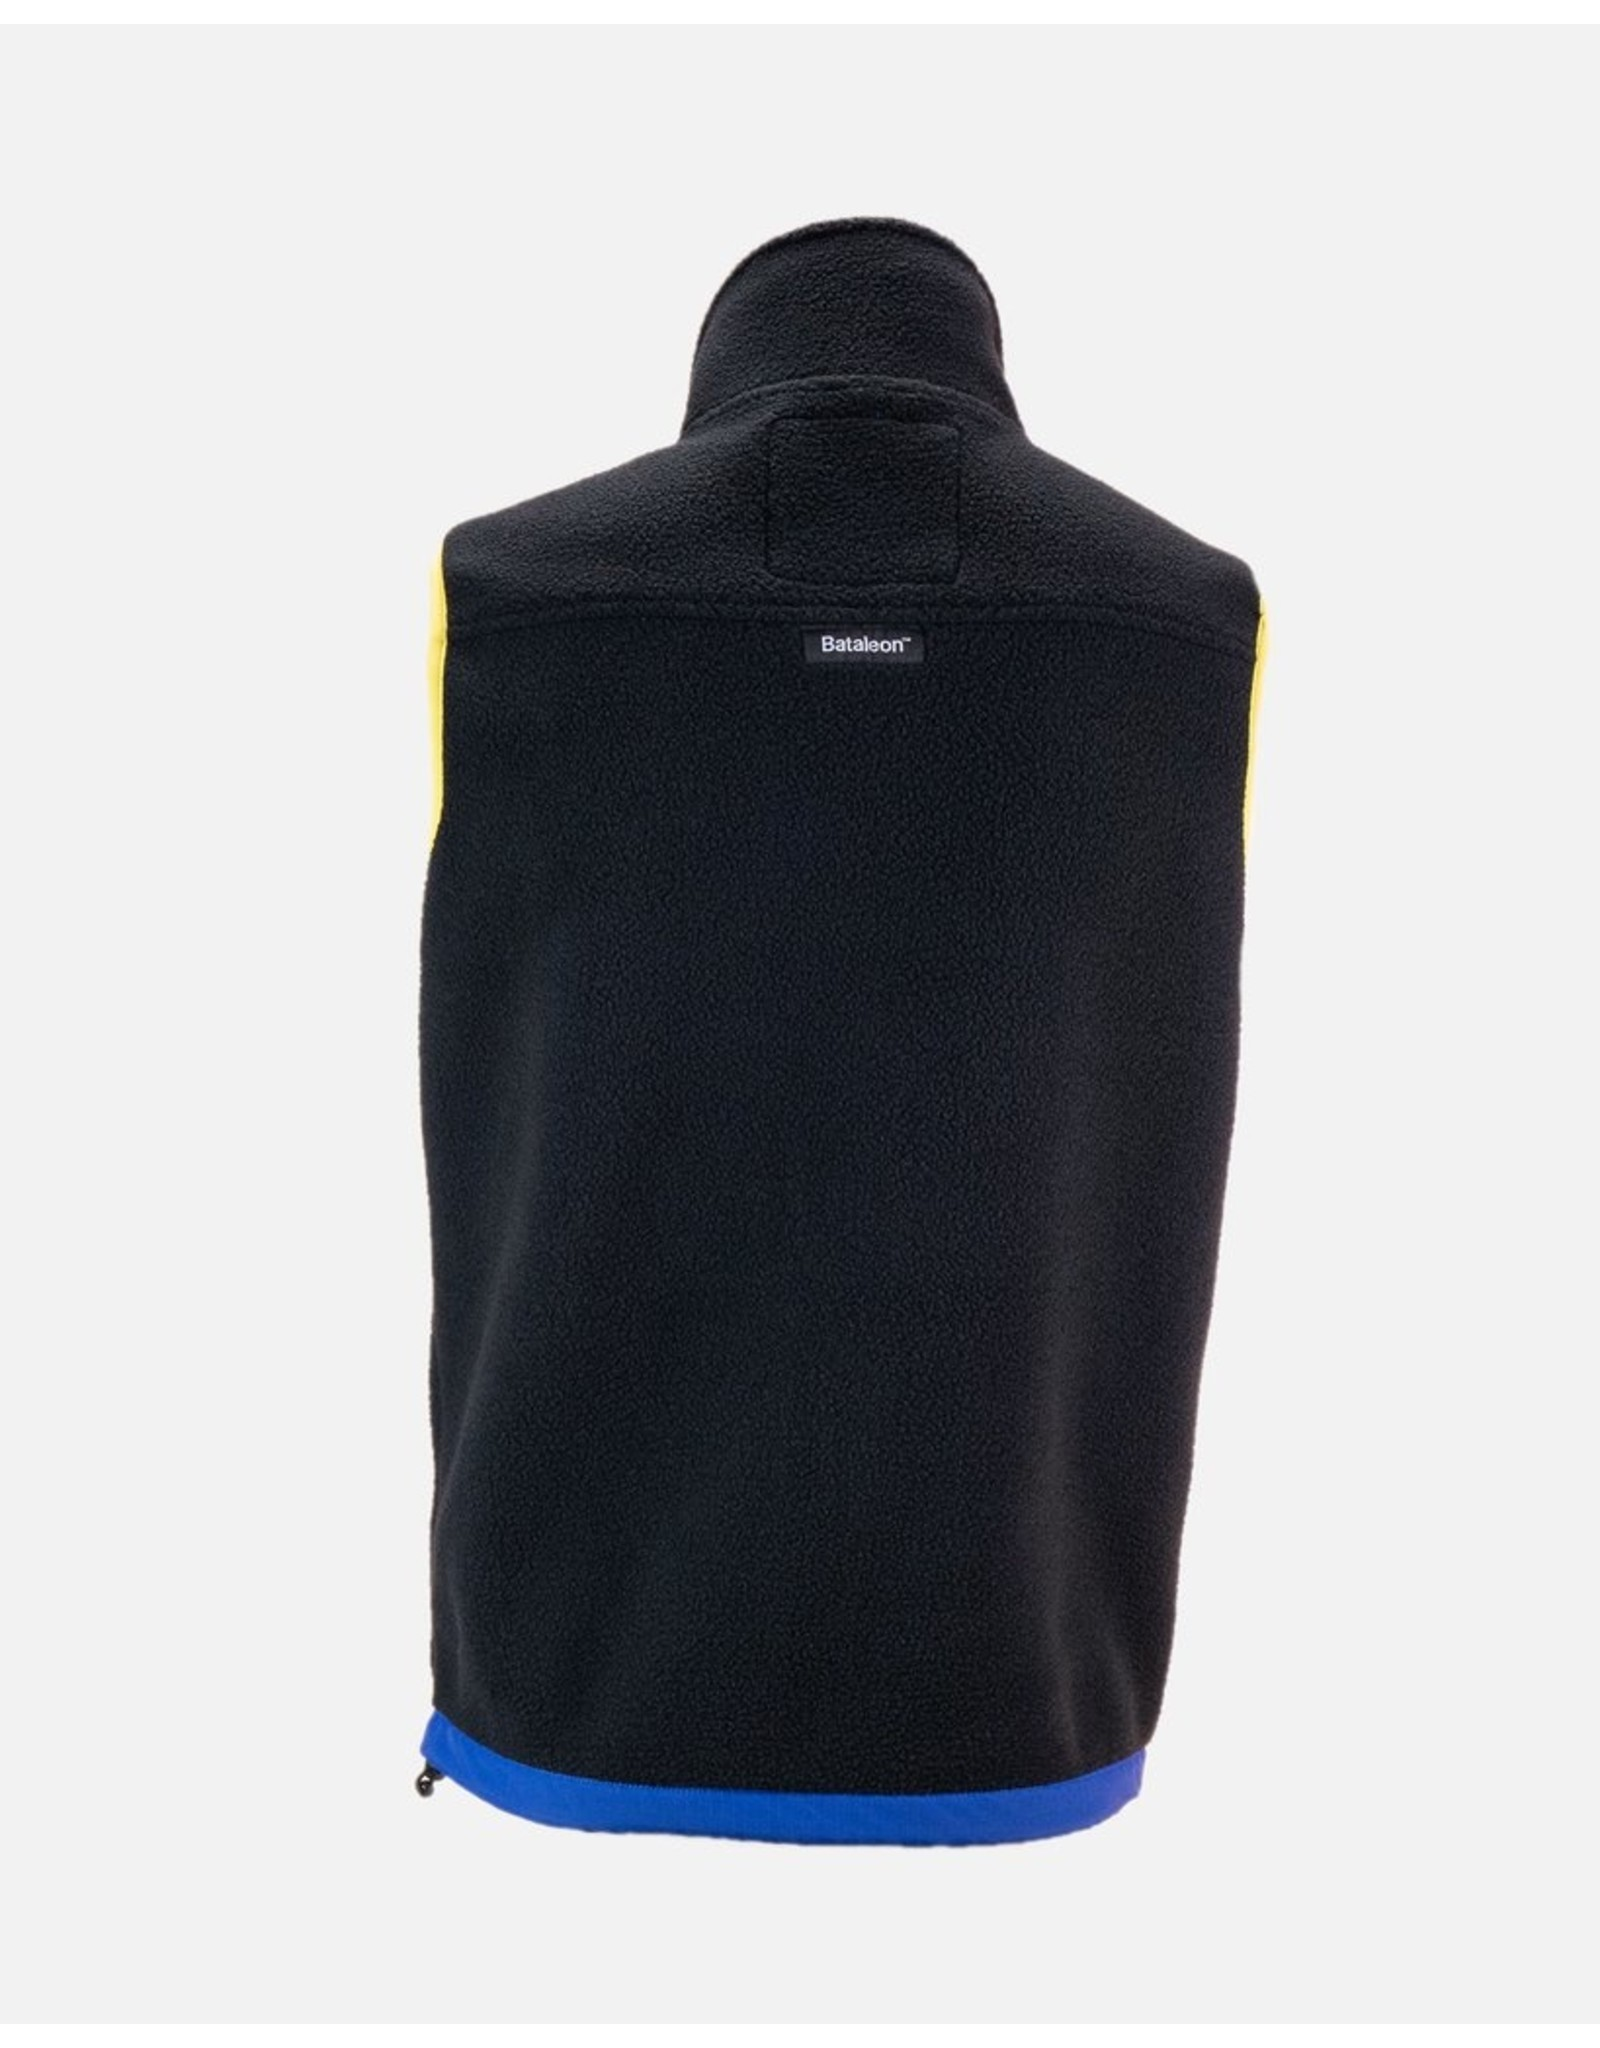 BATALEON BATALEON - CHEST VEST - BLACK -